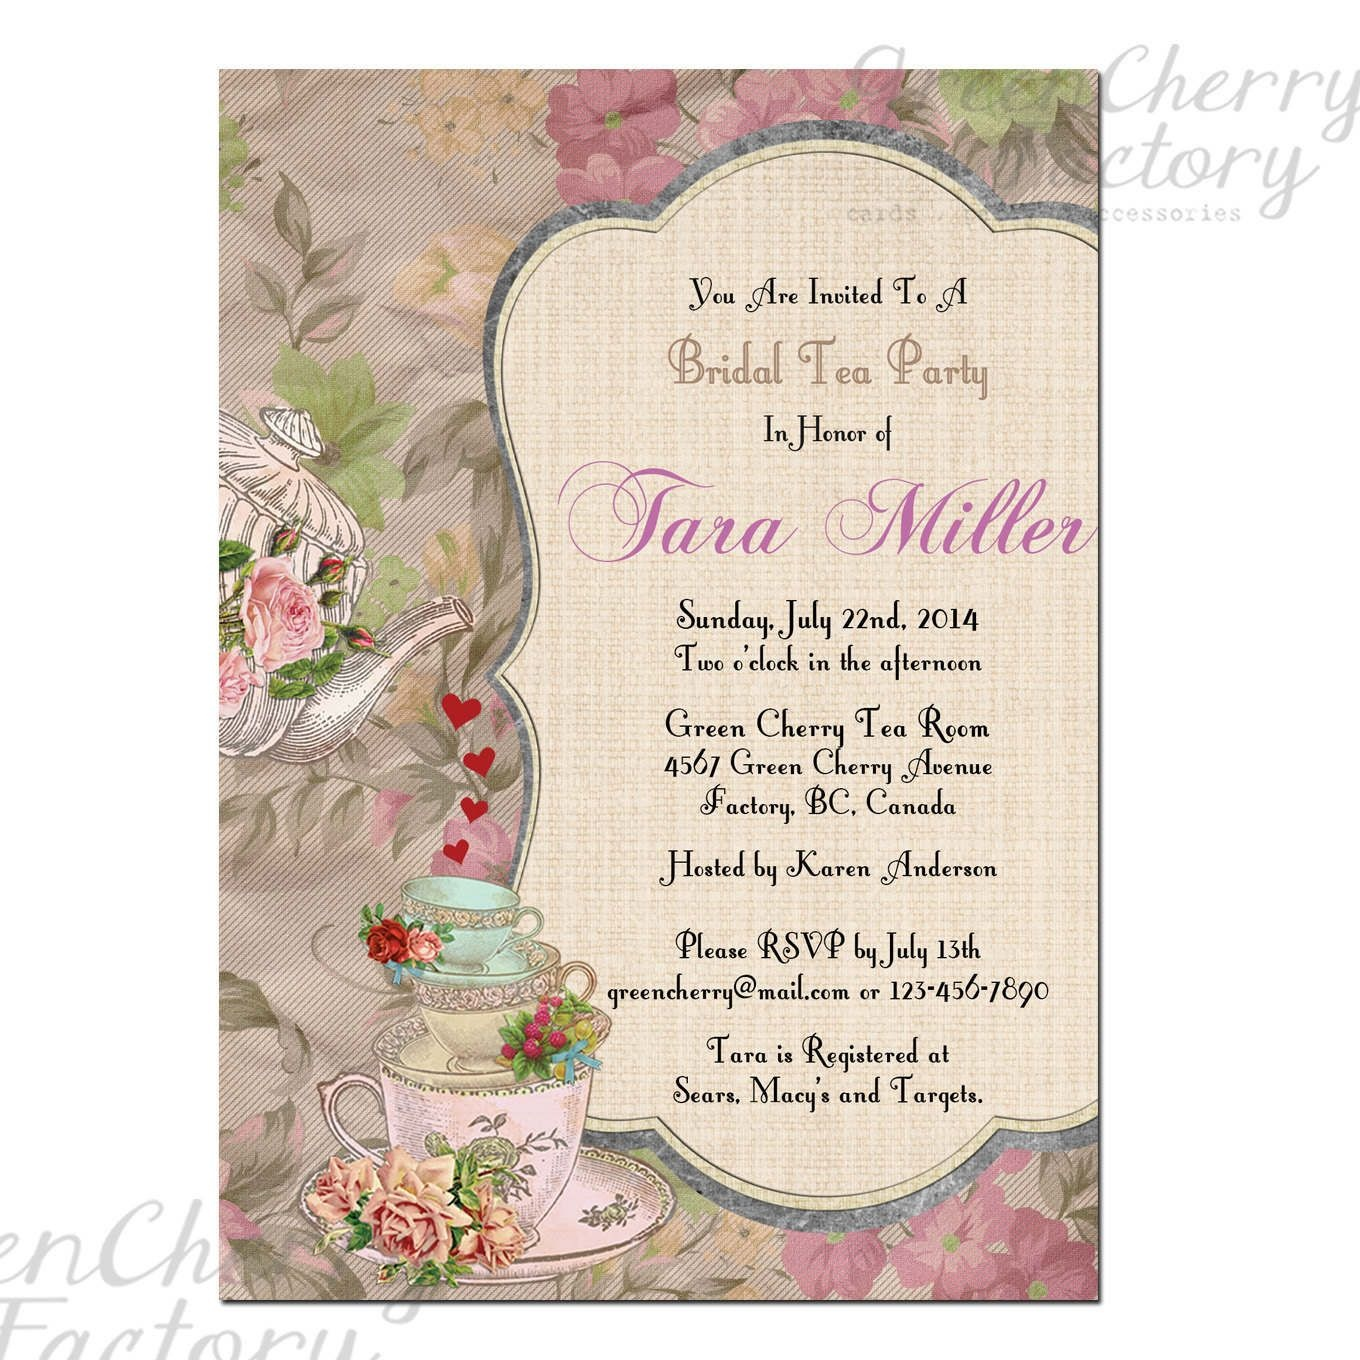 Event Invitation Card Template Free Awesome Free Christmas Party - Free Printable Kitchen Tea Invitation Templates